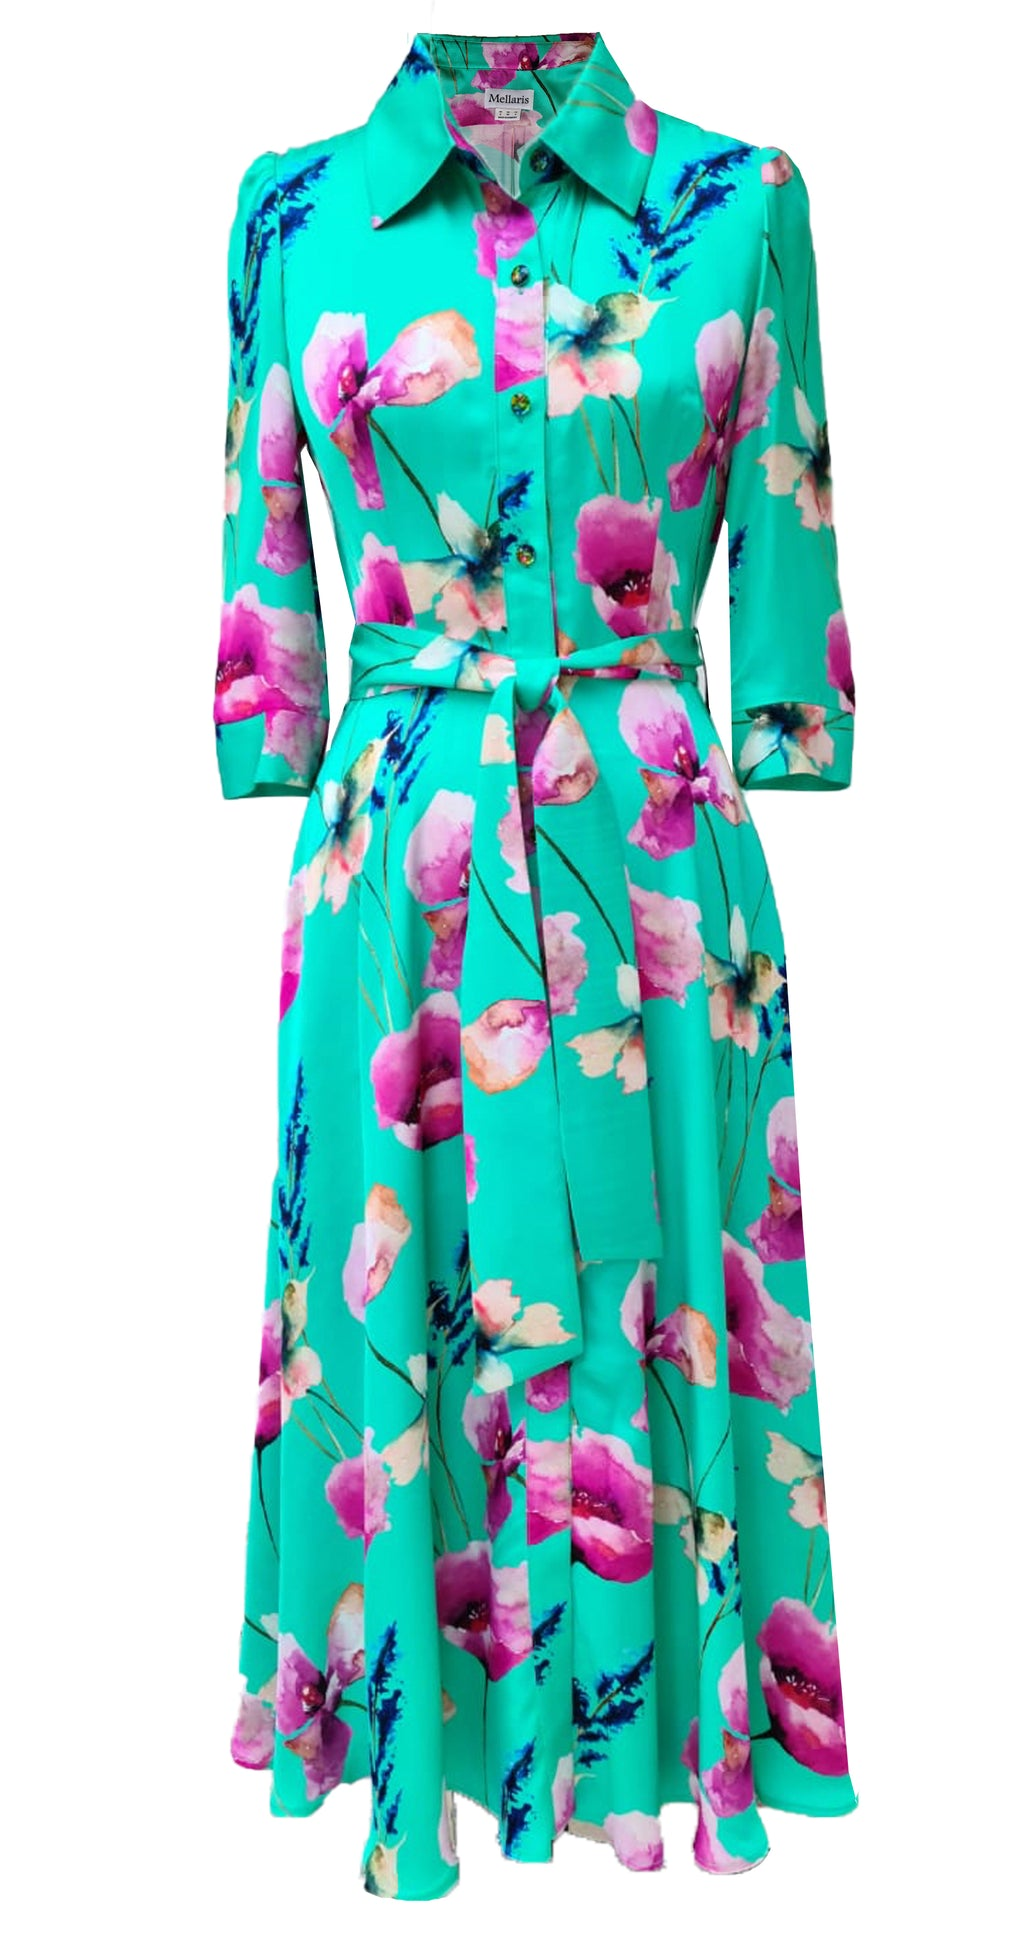 Marsden Dress DRC374 Green Poppy Print